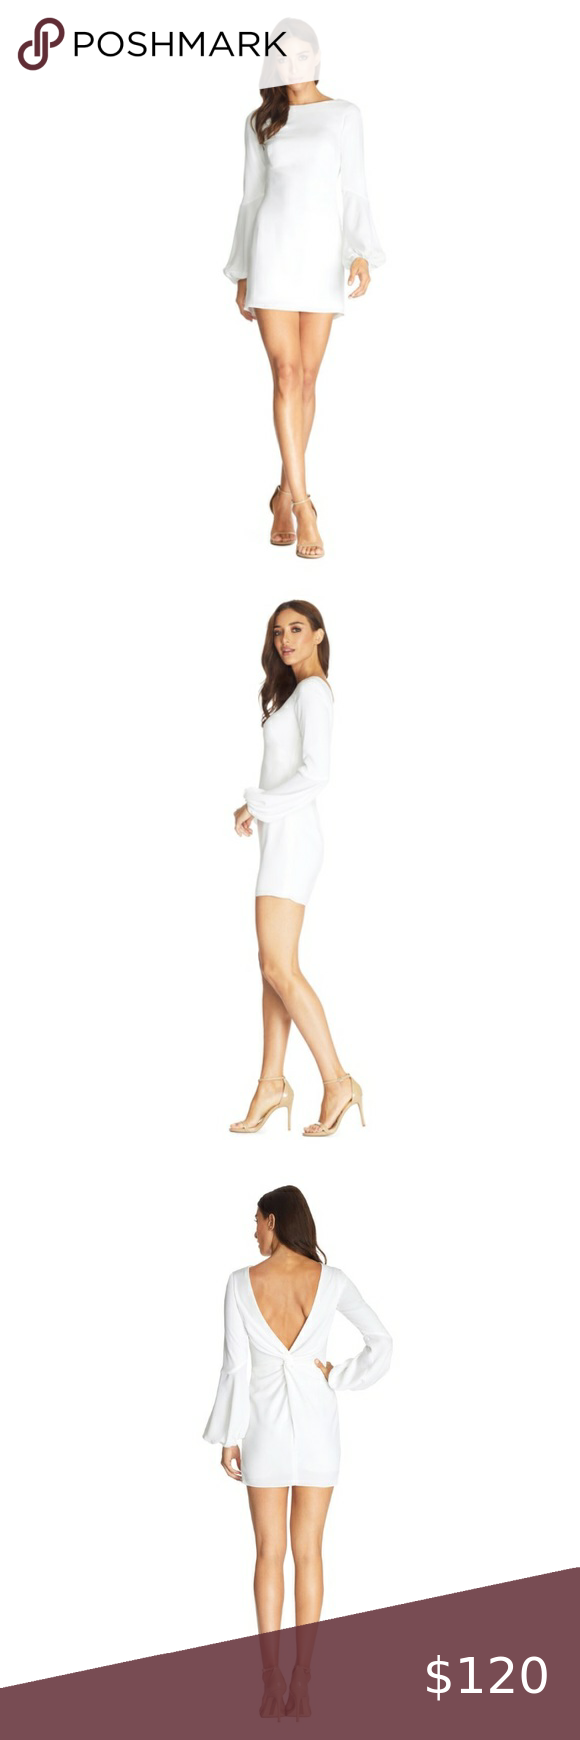 Dress The Population Mackenzie Long Sleeve Dress Colorway White Sold Out High Round Neckline Long Sl Dress The Population Long Sleeve Dress Long Sleeve